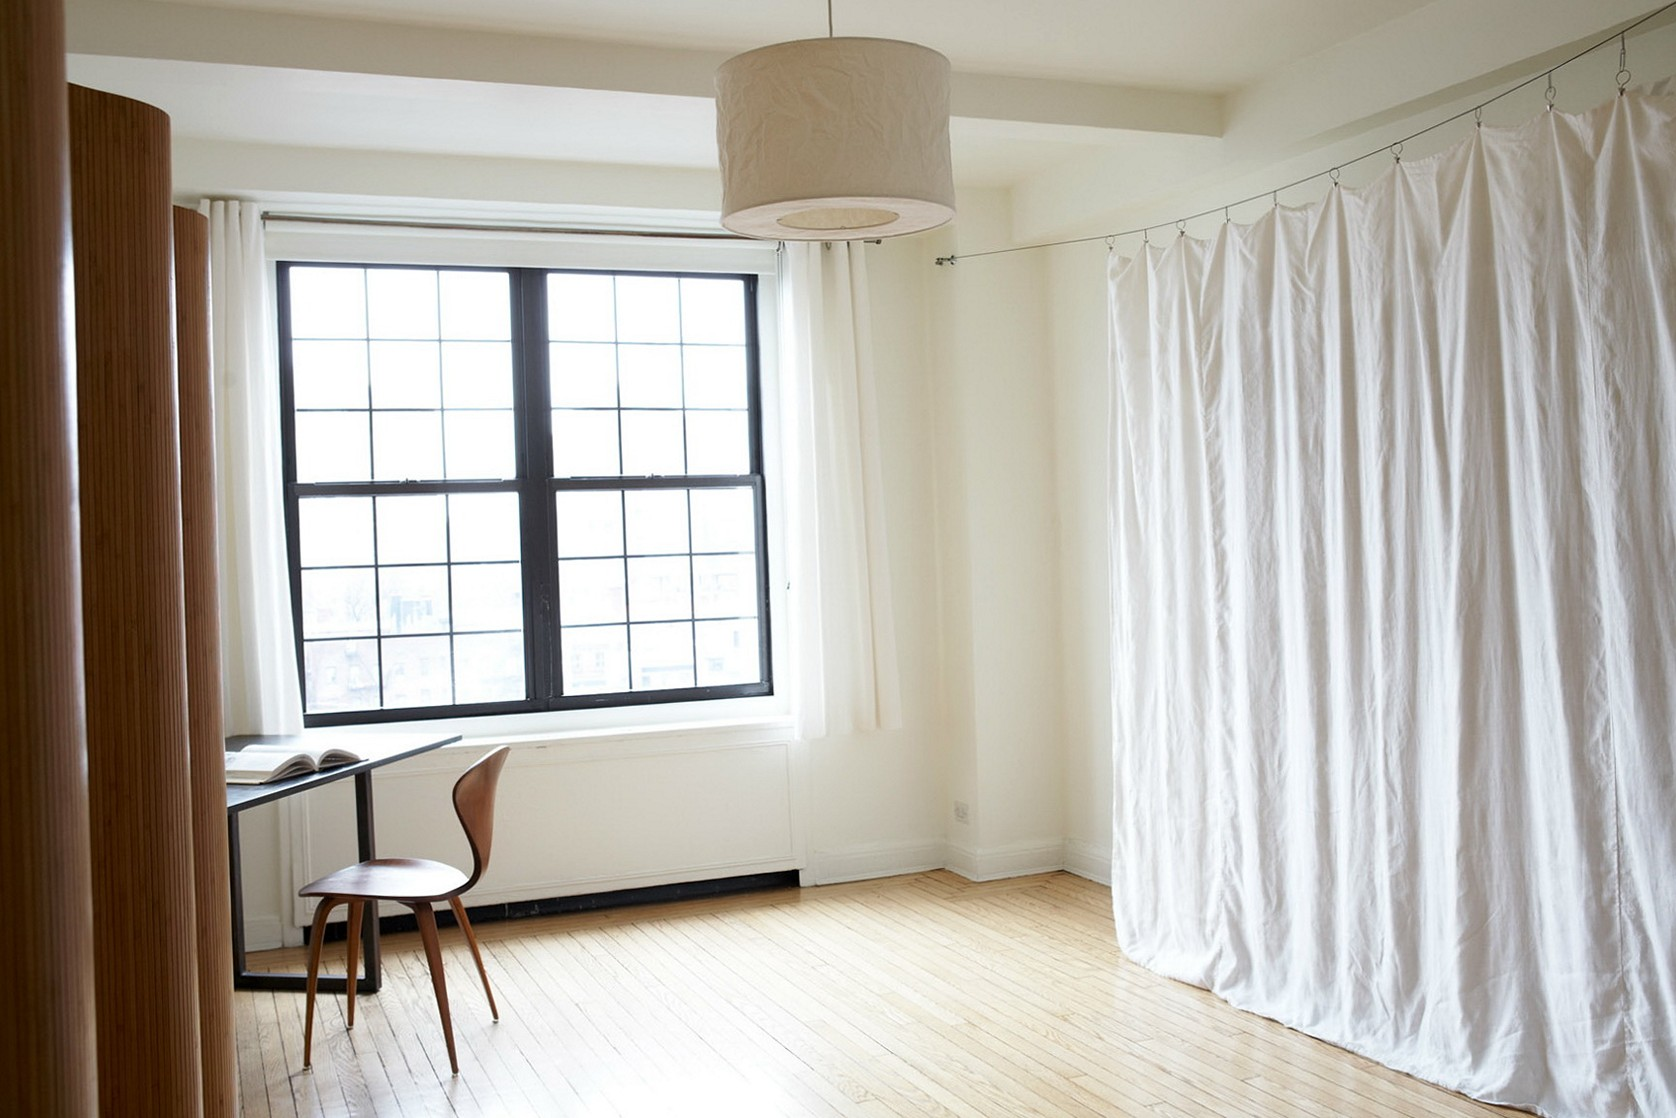 Image of: Curtain Room Divider Cheap